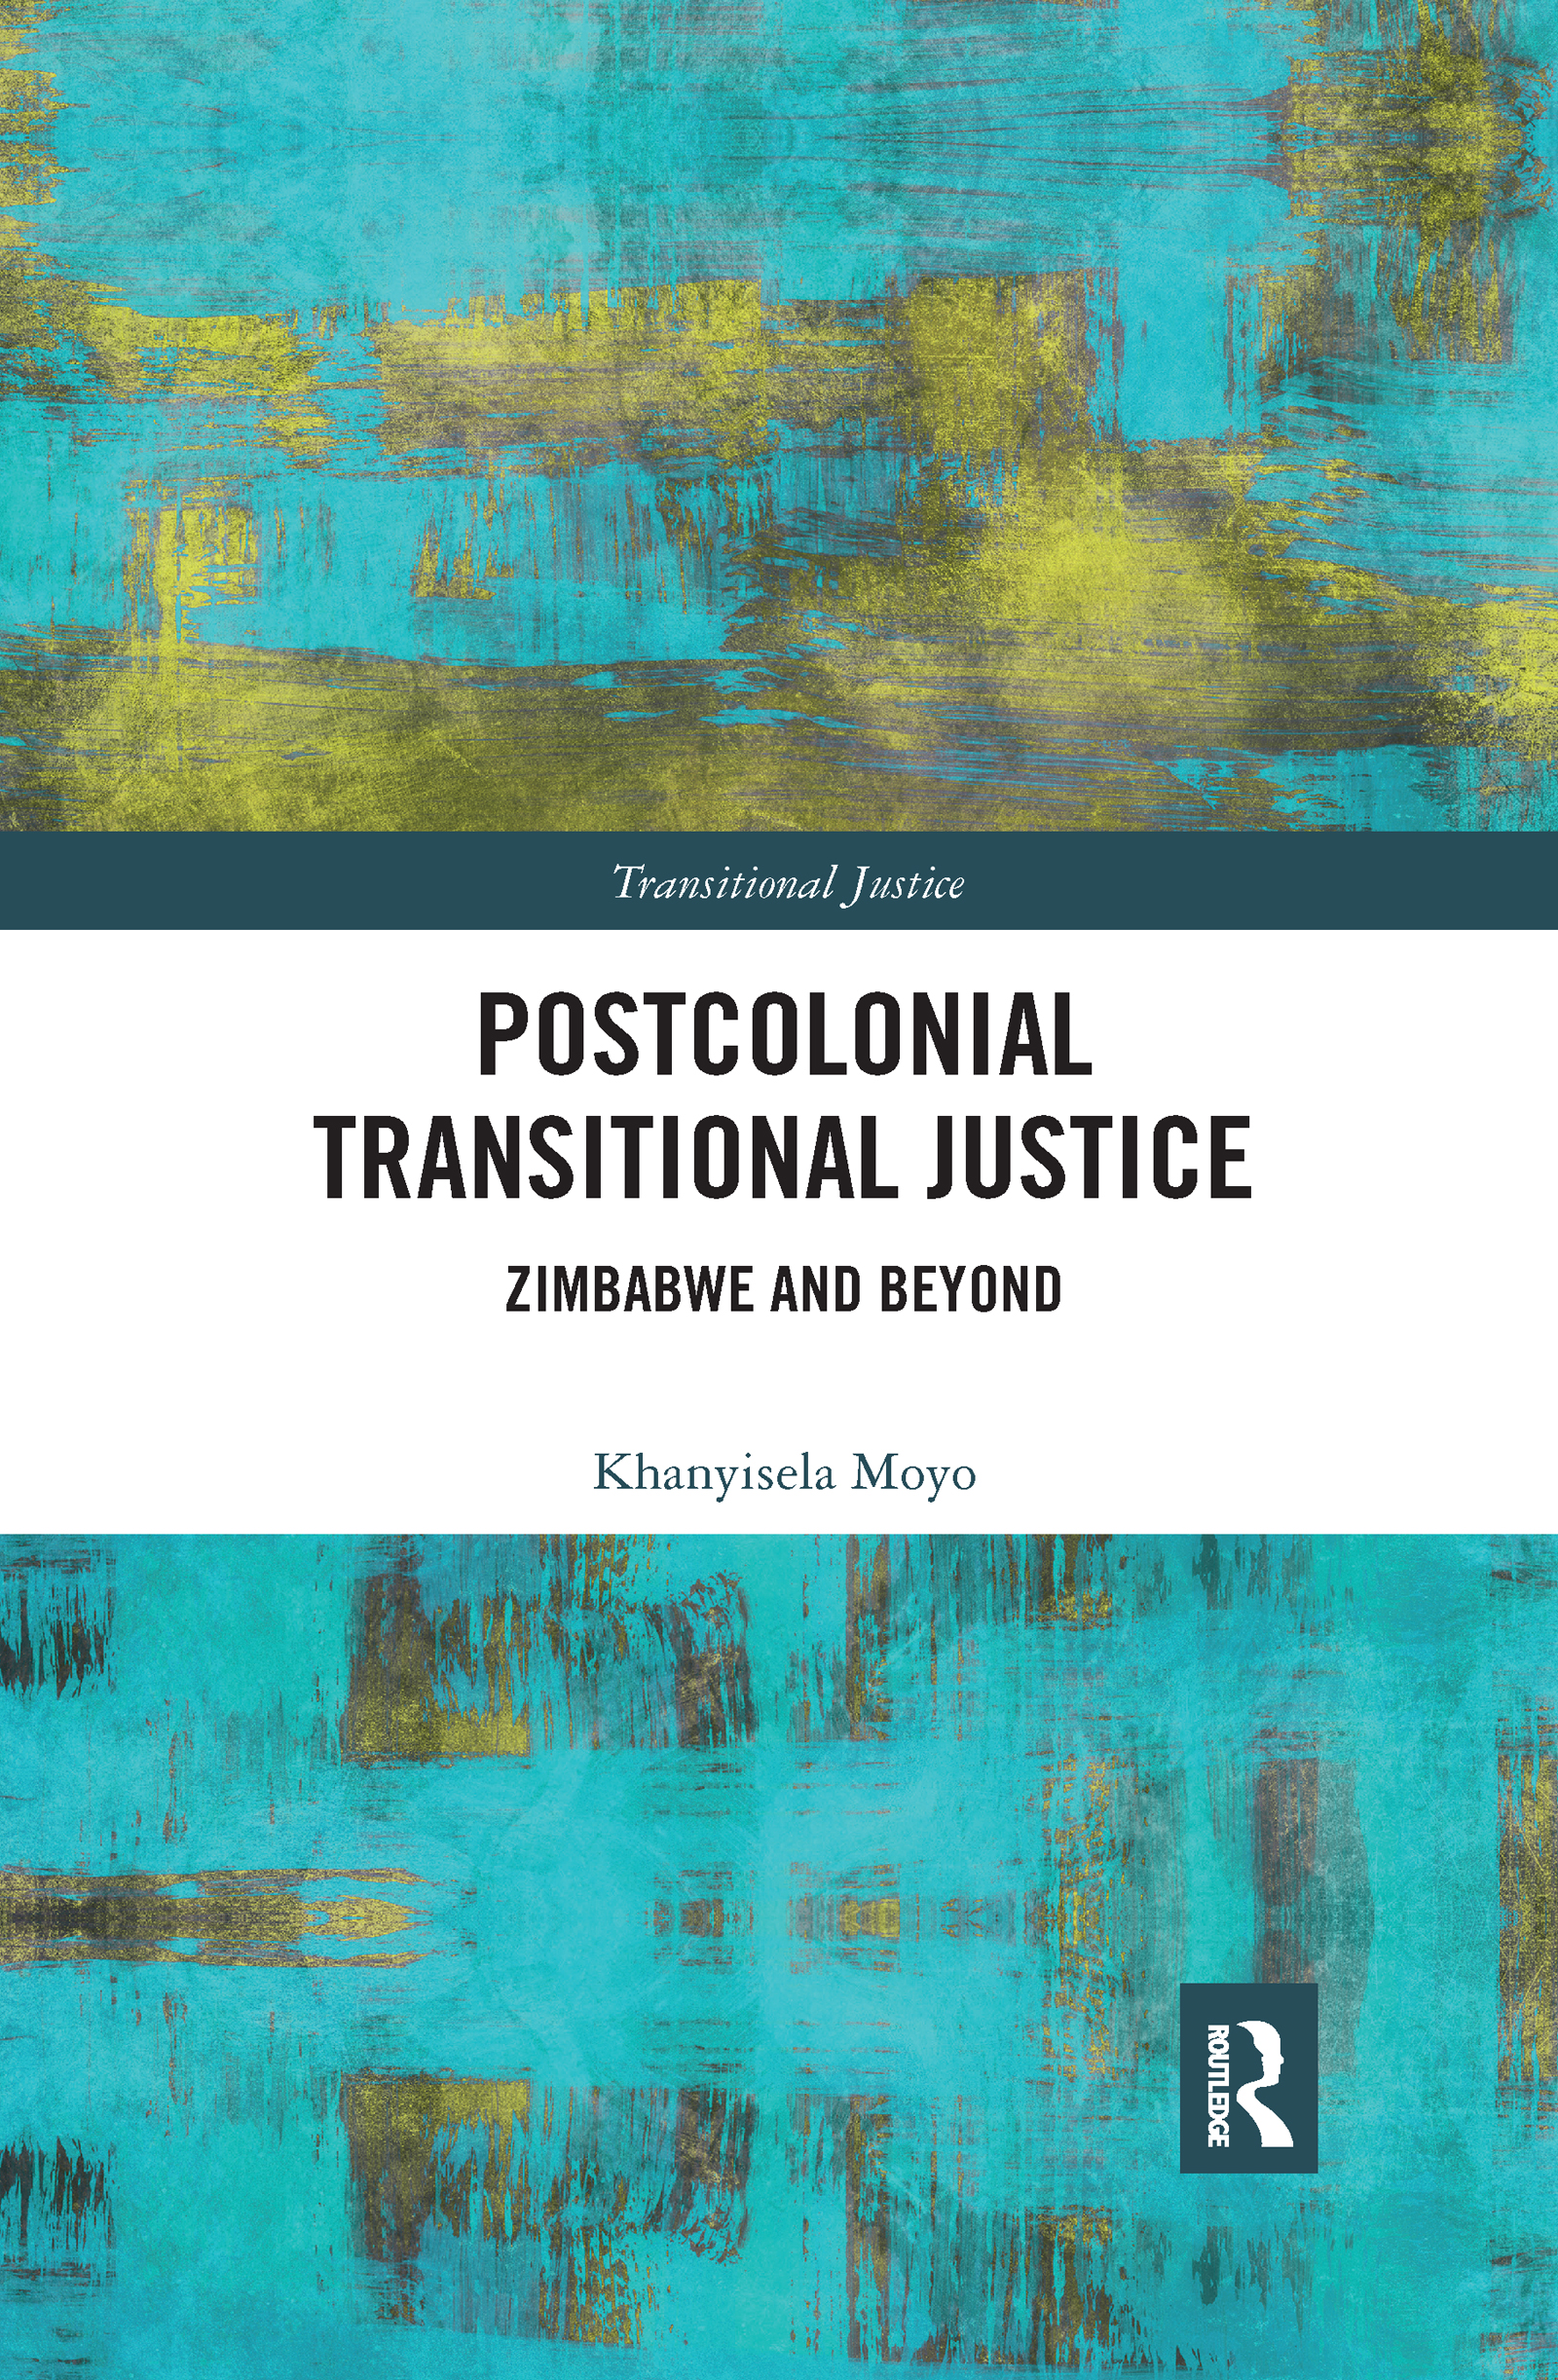 Postcolonial Transitional Justice